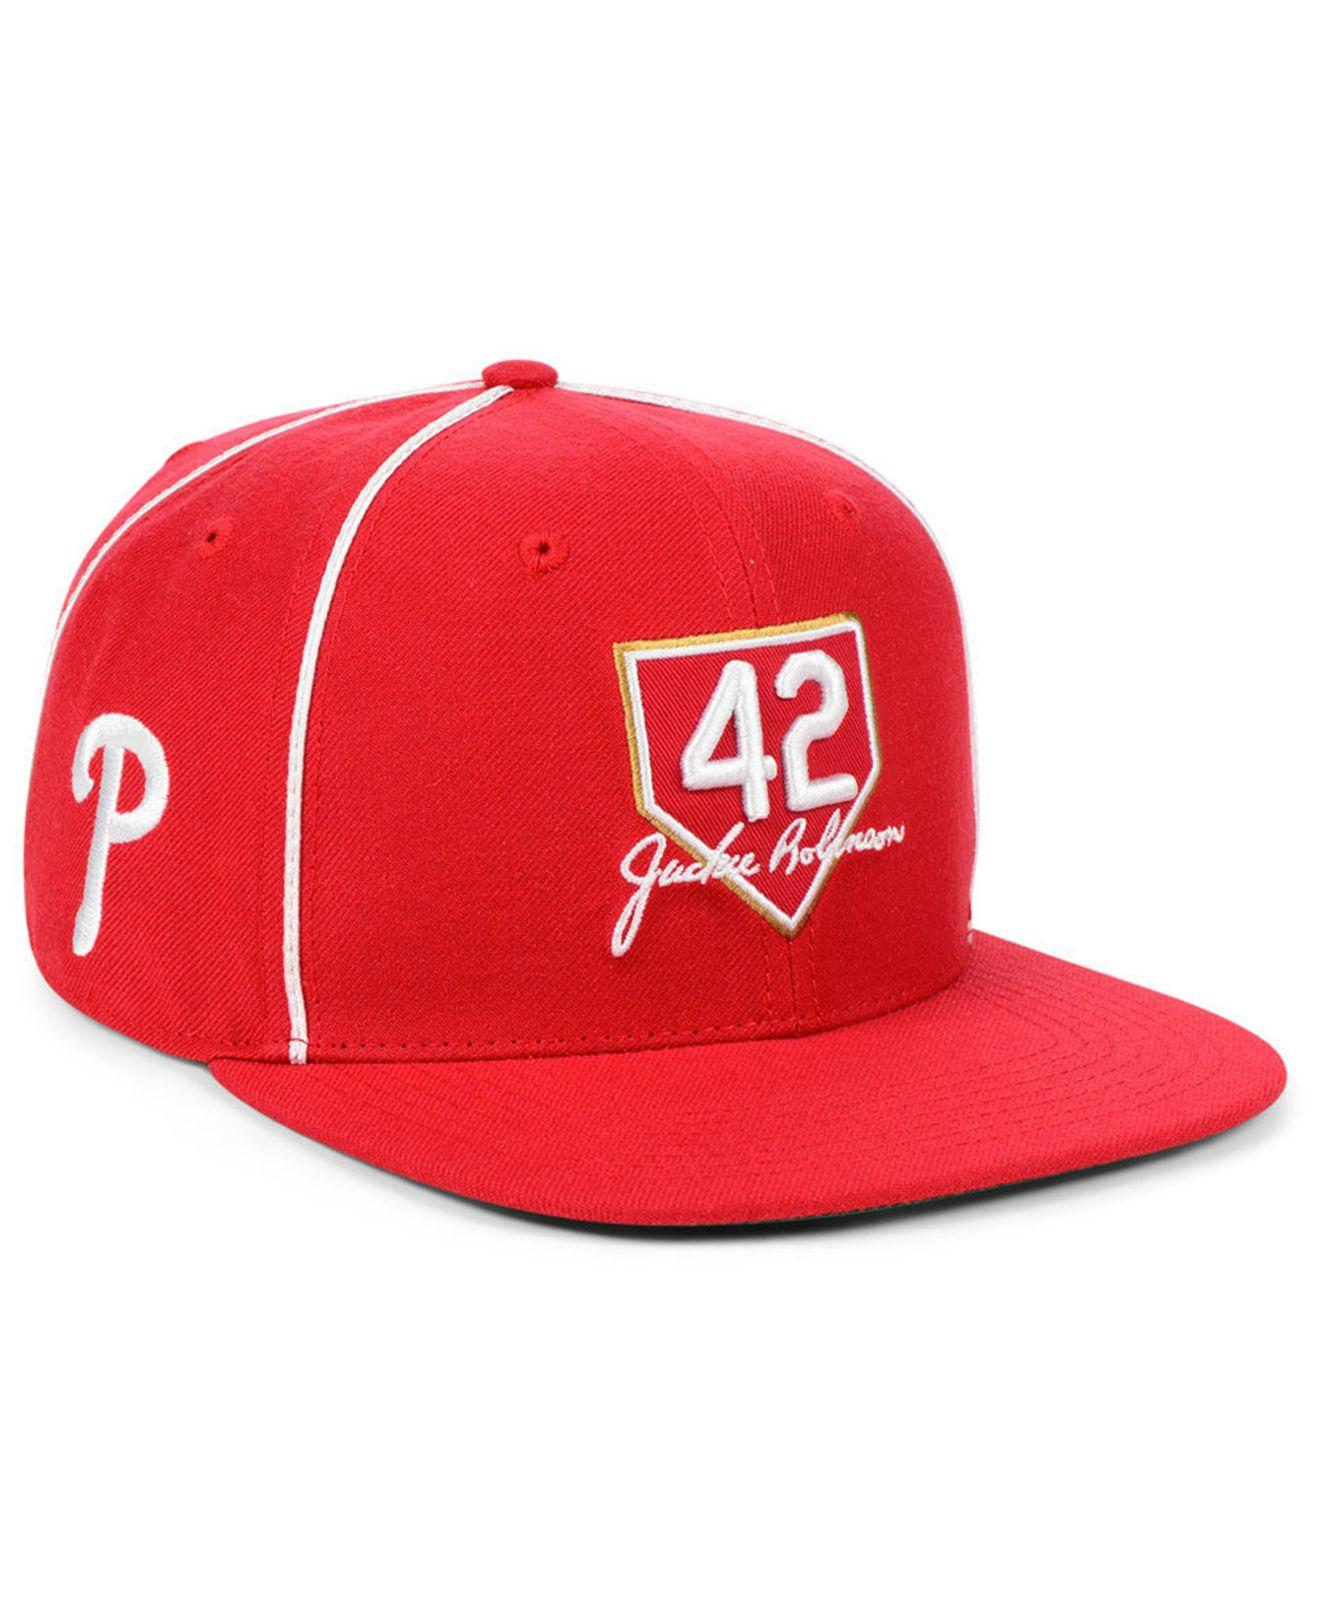 finest selection 33b55 67f01 47 Brand. Men s Red Philadelphia Phillies Jackie Robinson 42 Team ...